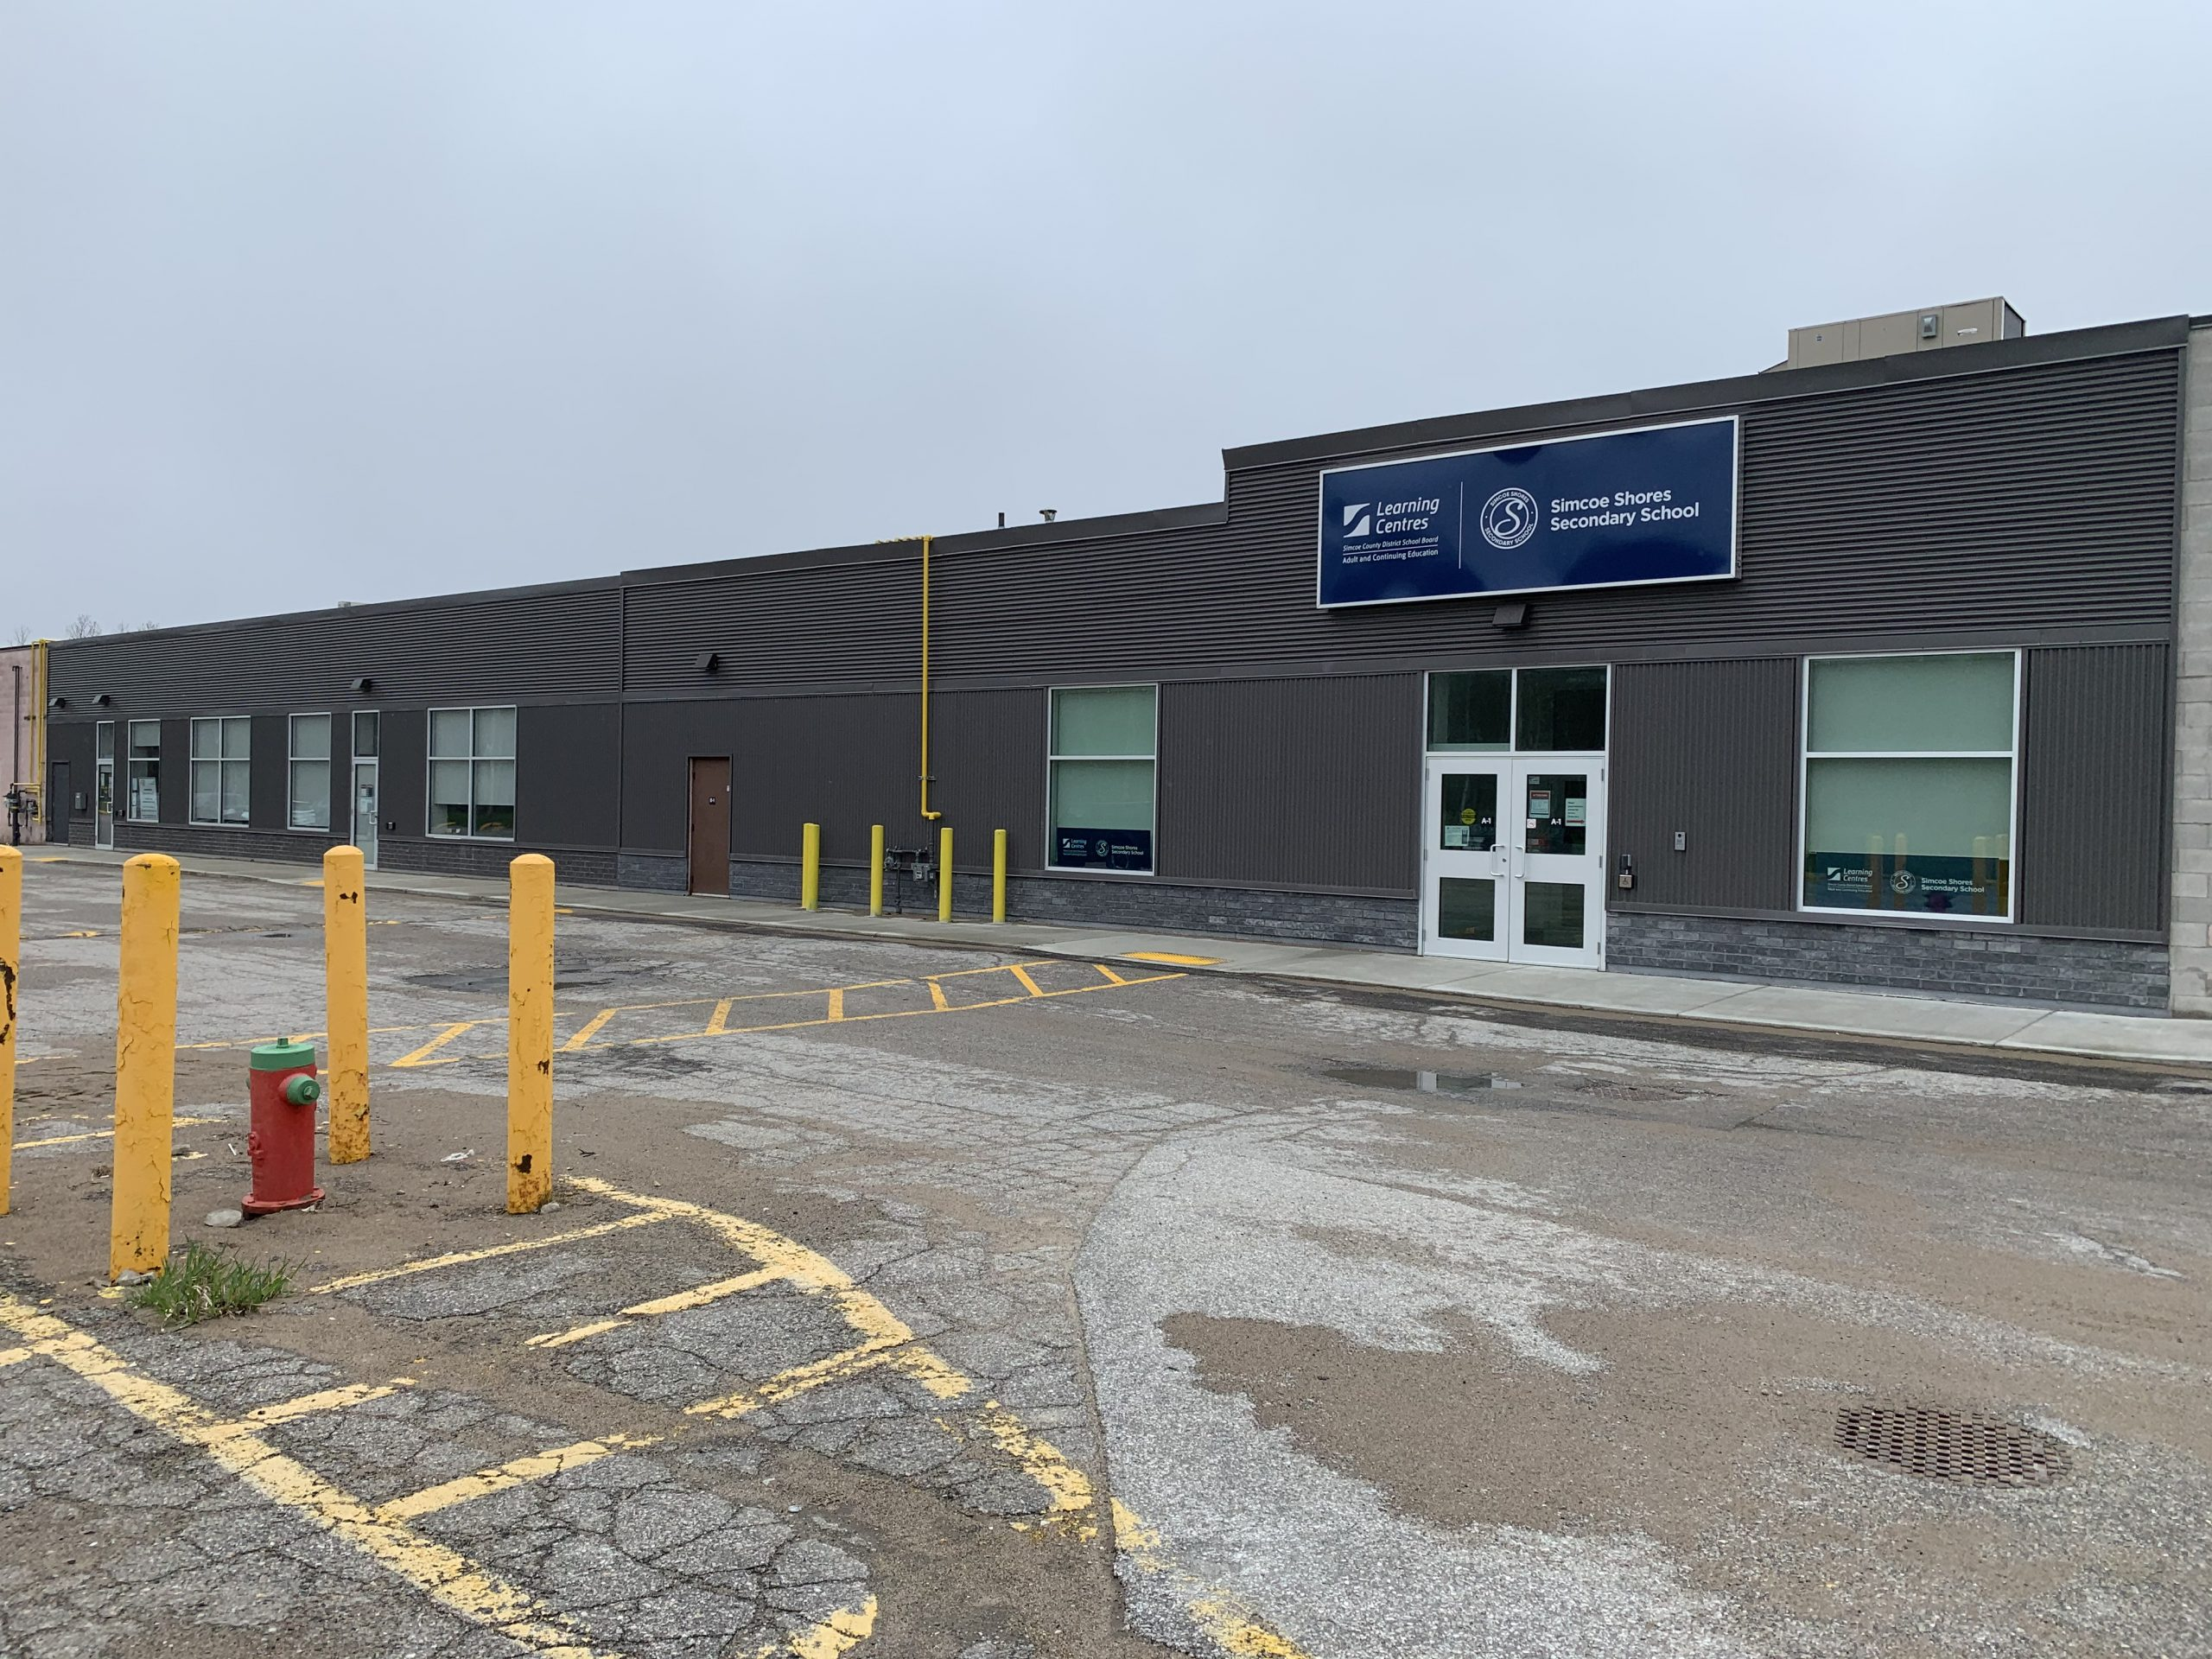 Exterior view of the Simcoe County District School Board's North Simcoe Learning Centre and Simcoe Shores Secondary School – Midland Campus. This project was managed by our Employee Spotlight feature, Jana Shneider